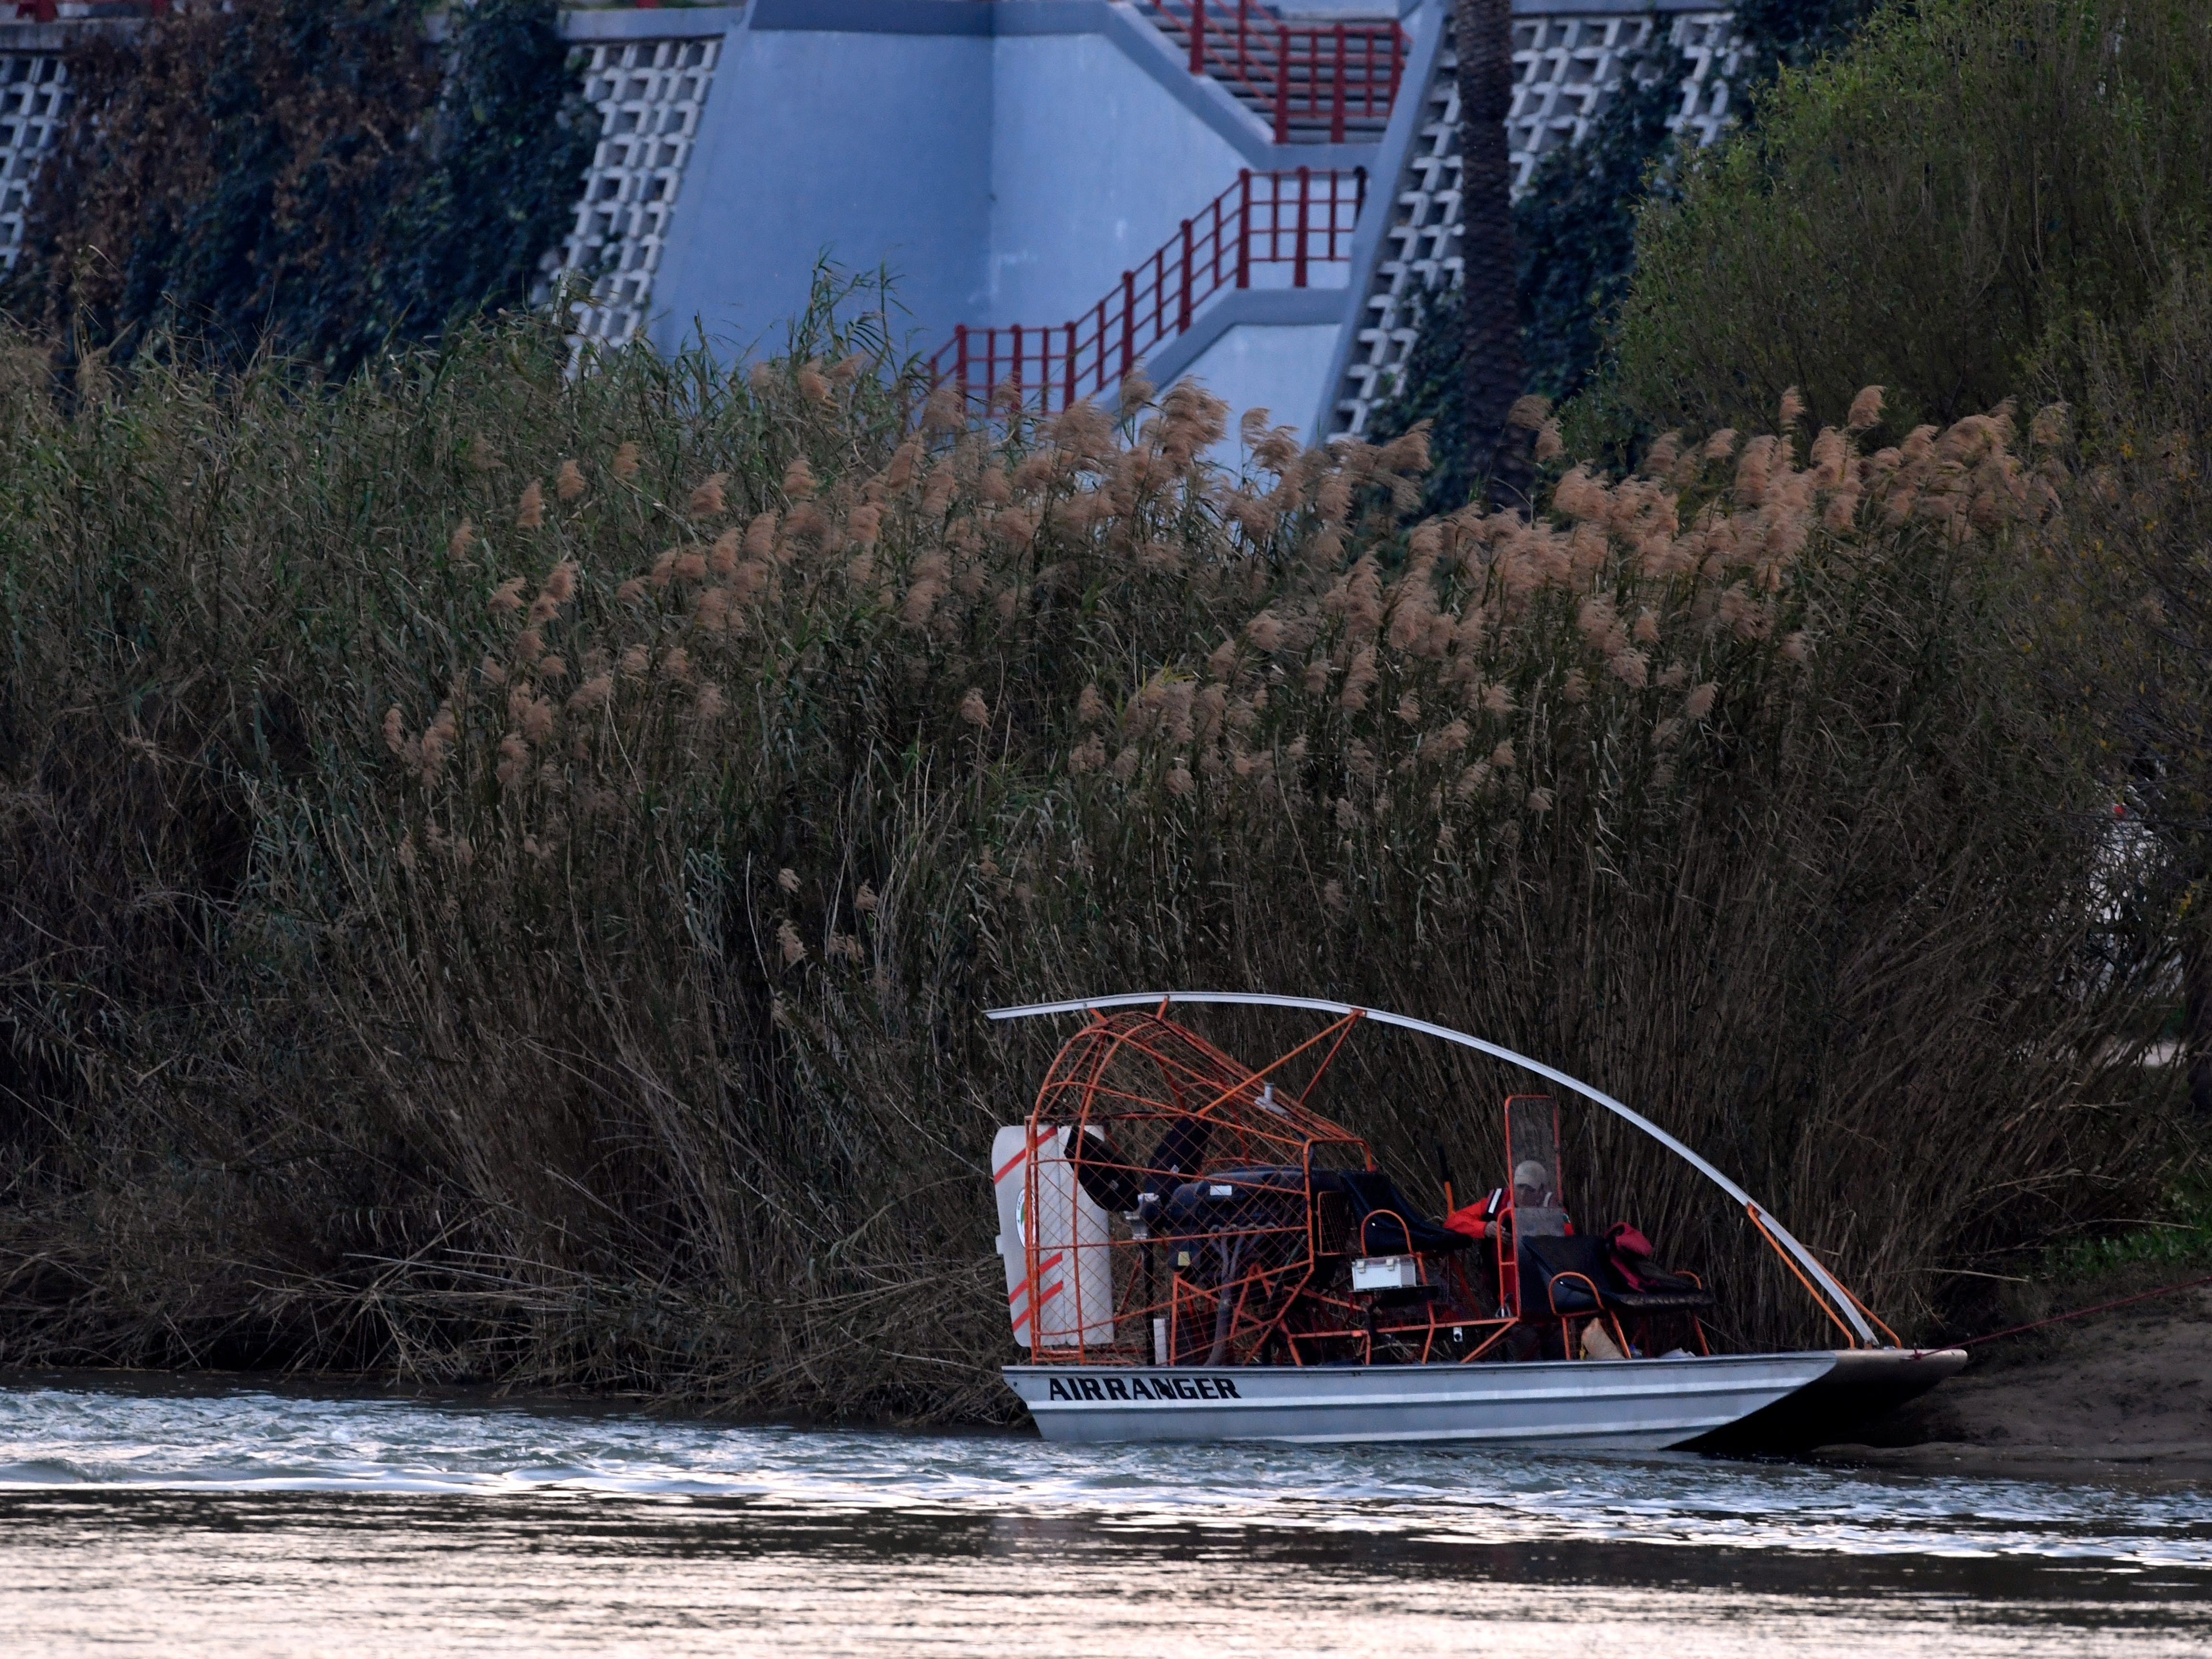 An airboat is tied on the Piedras Negras-side of the Rio Grande Wednesday Feb. 6, 2019. Deployed for rescuing migrants trying to cross the river, the boat is operated by the Mexican government.